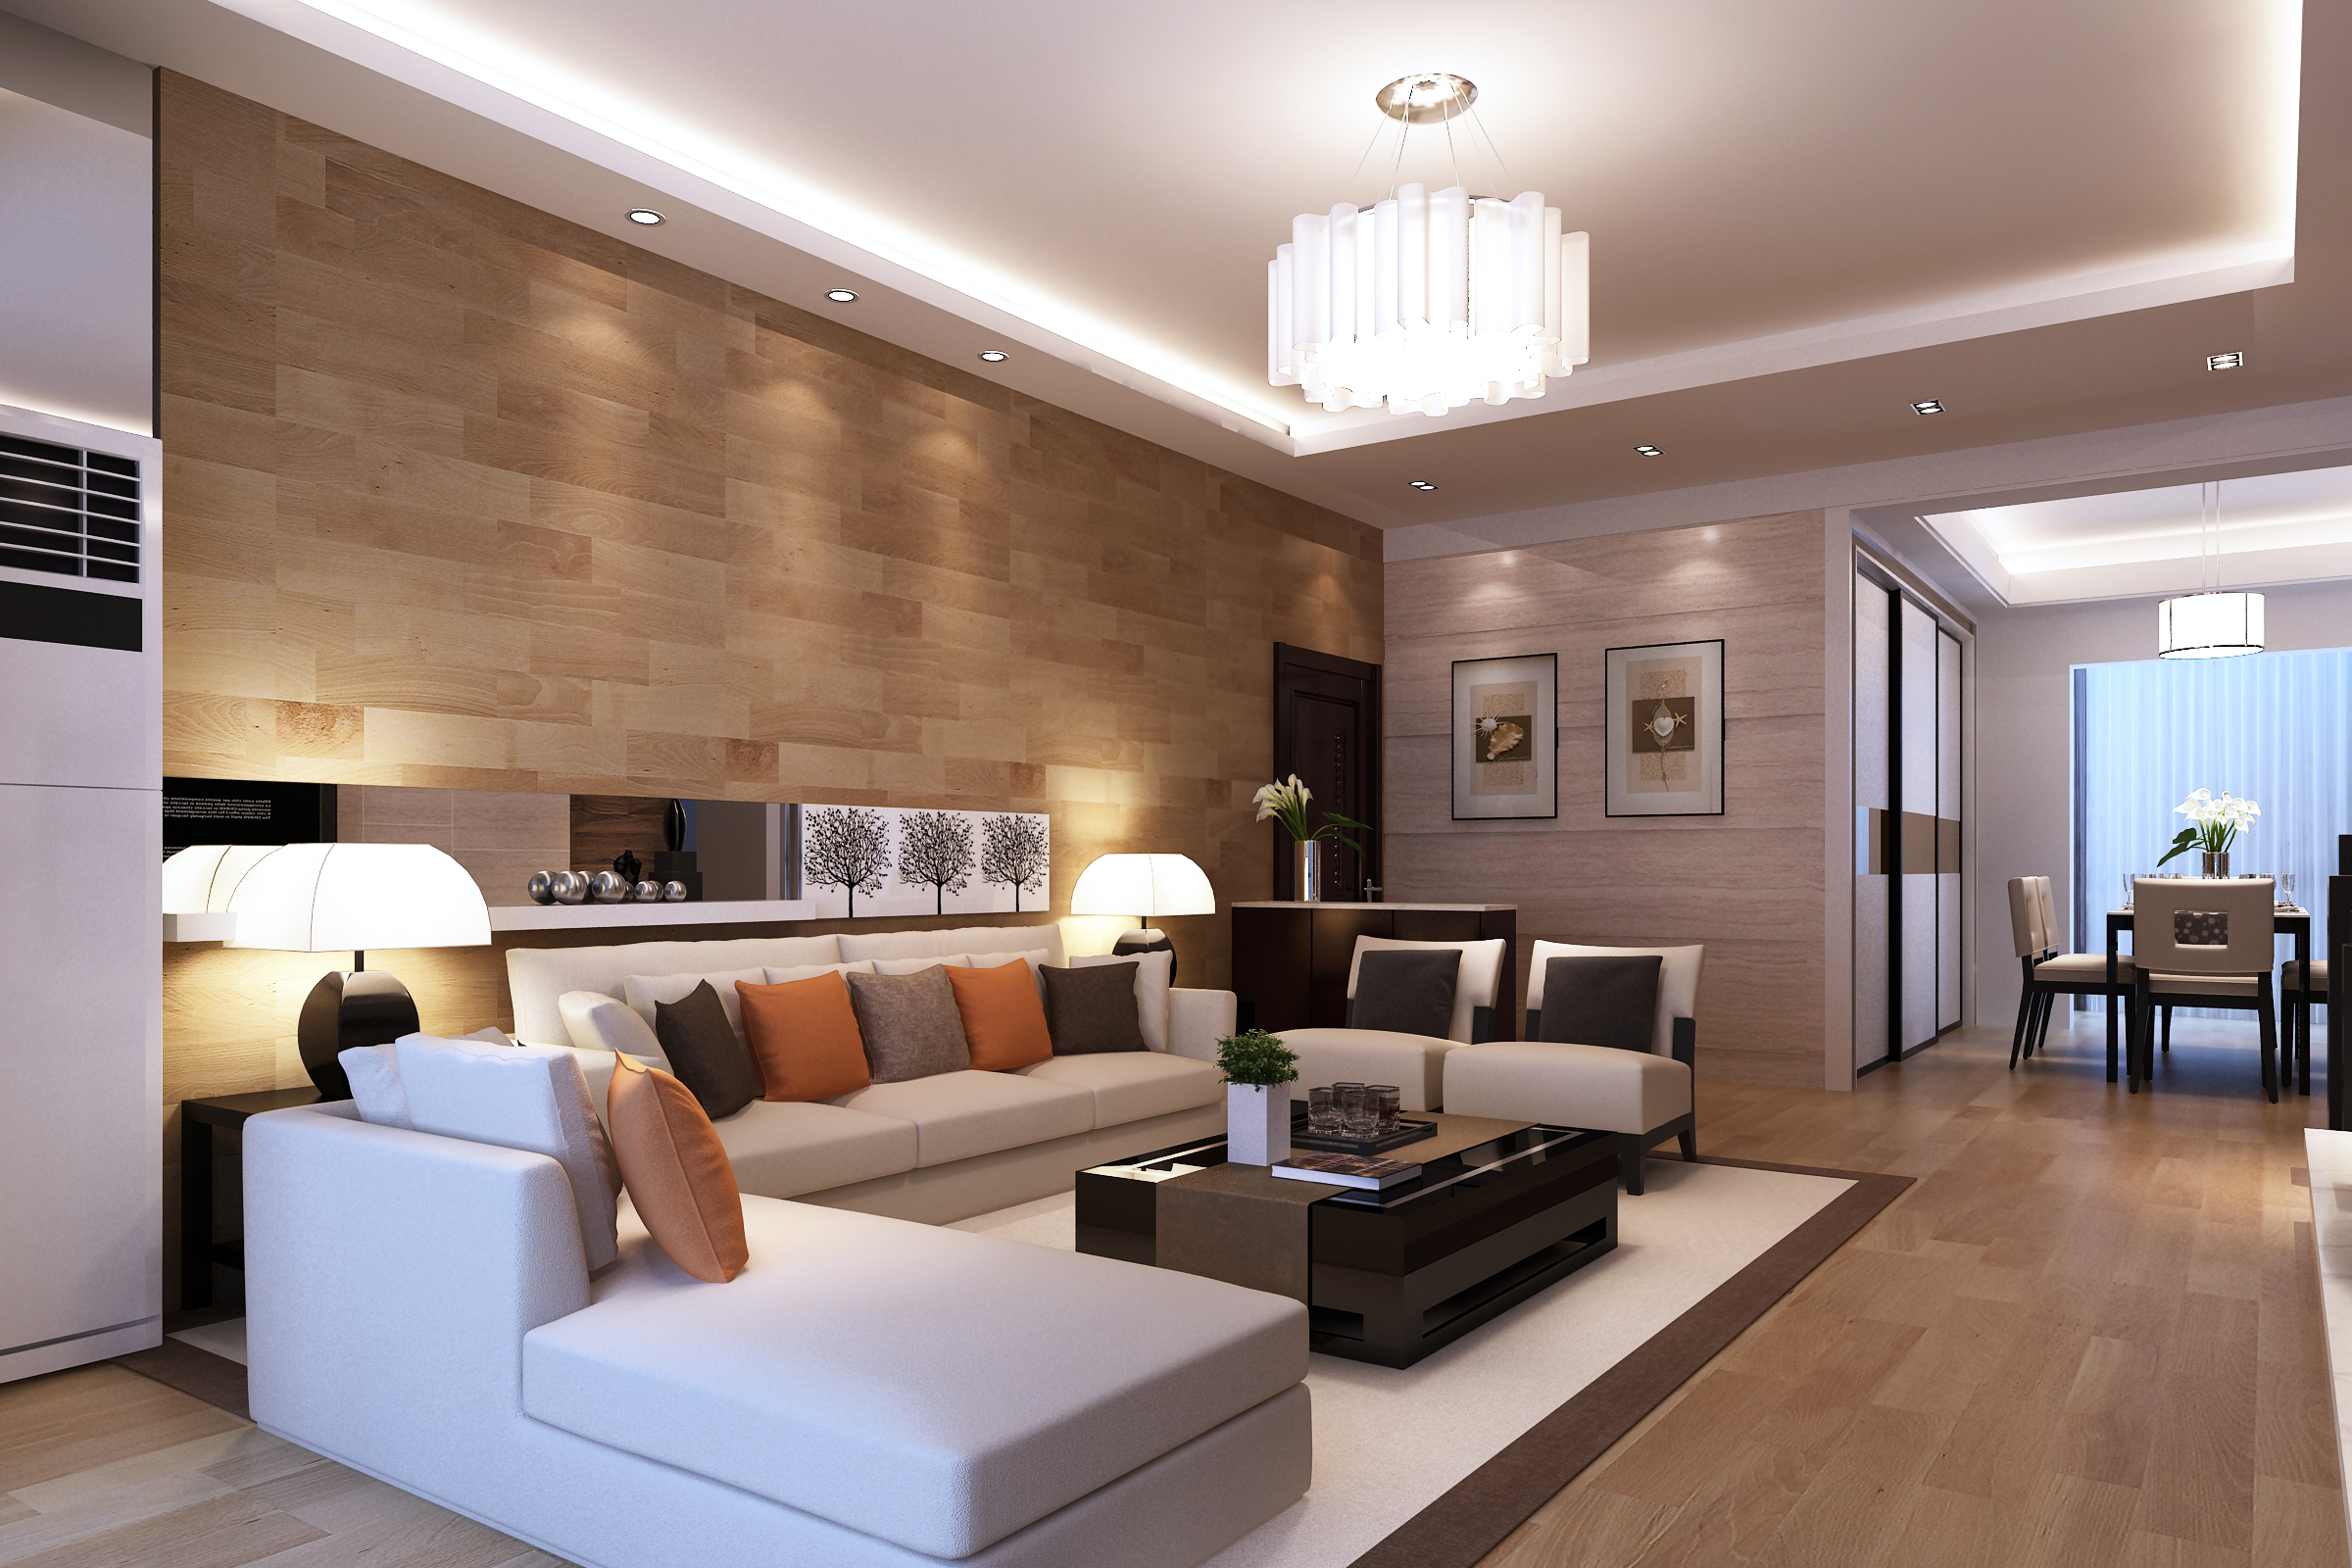 A guide to modern living room designs | Decoration Designs Guide